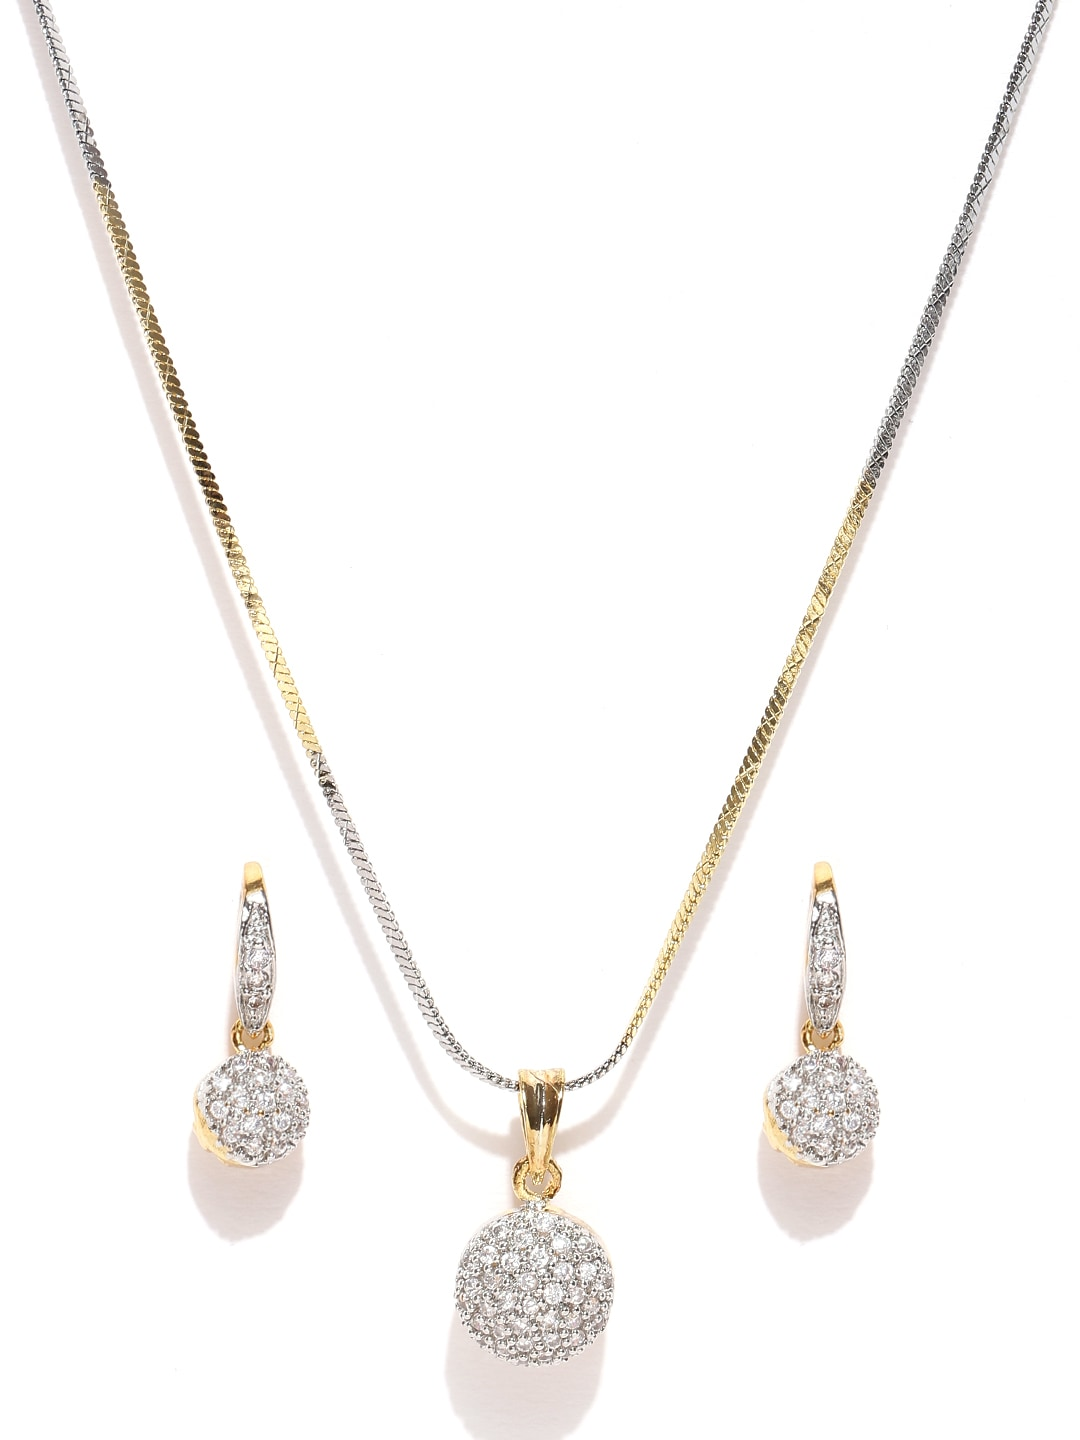 729ca807a Women Gold Jewellery Set Earring And Pendant - Buy Women Gold Jewellery Set  Earring And Pendant online in India